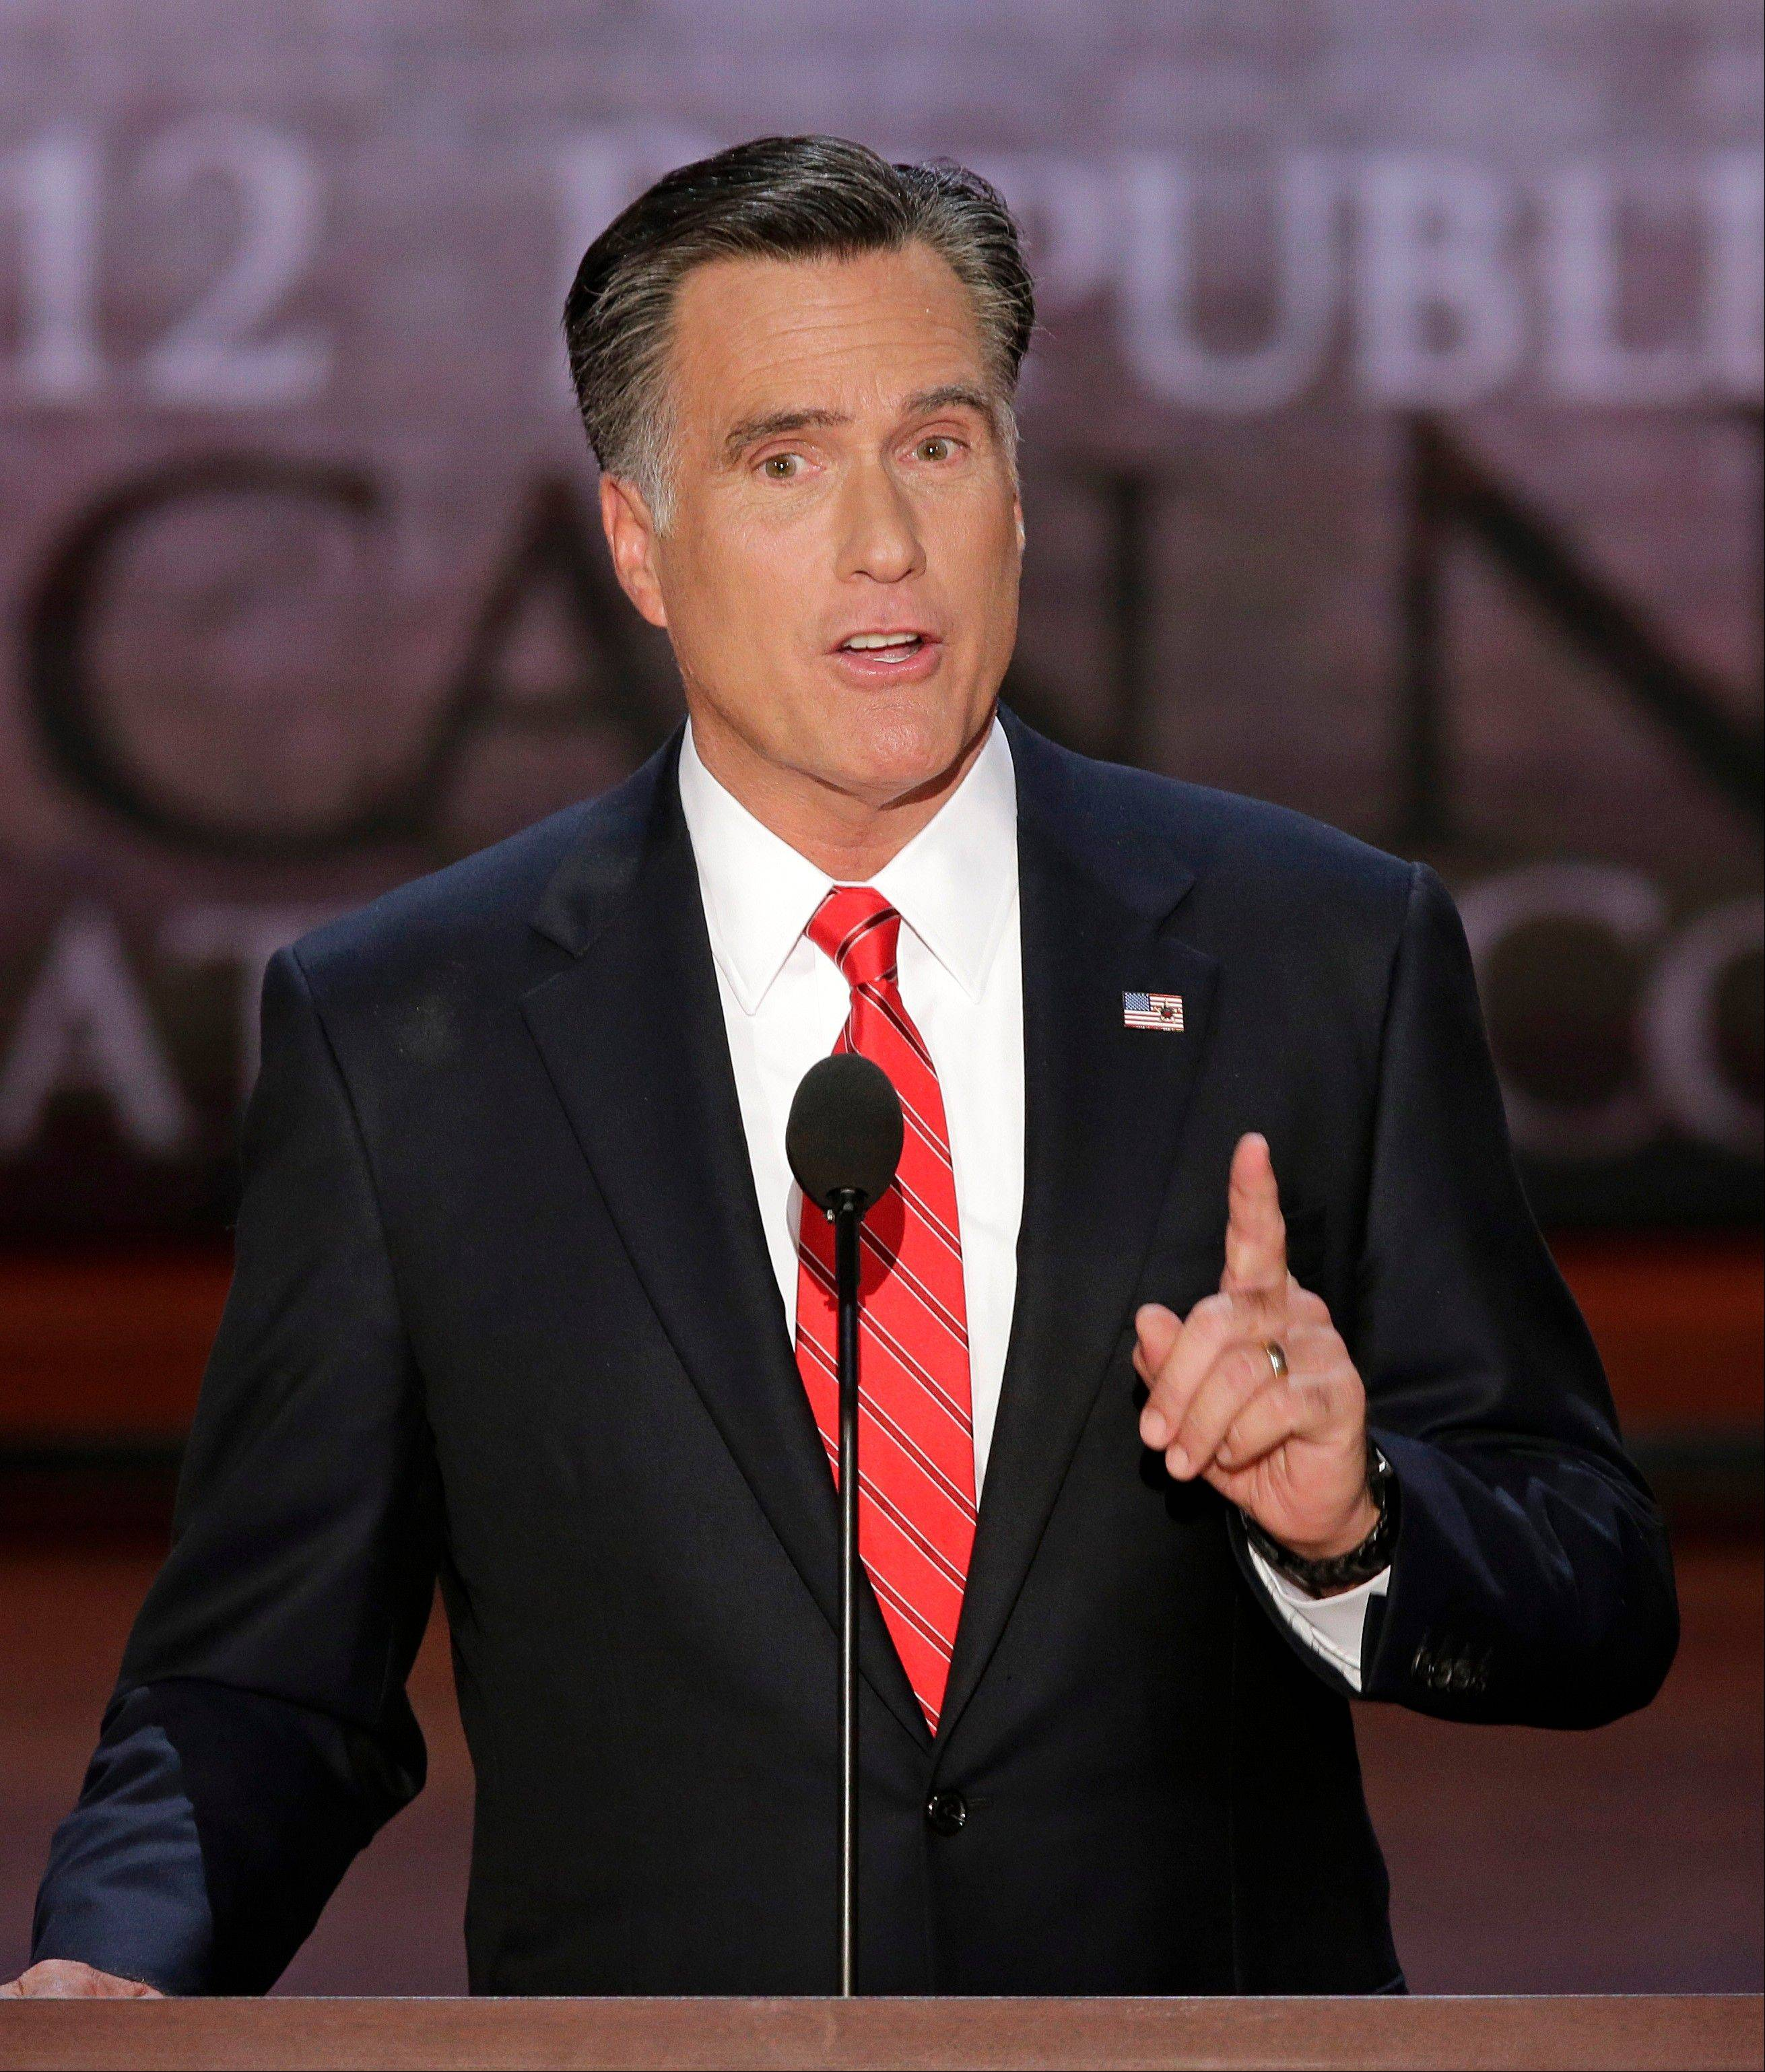 Republican presidential nominee Mitt Romney addresses the Republican National Convention in Tampa, Fla., on Thursday.